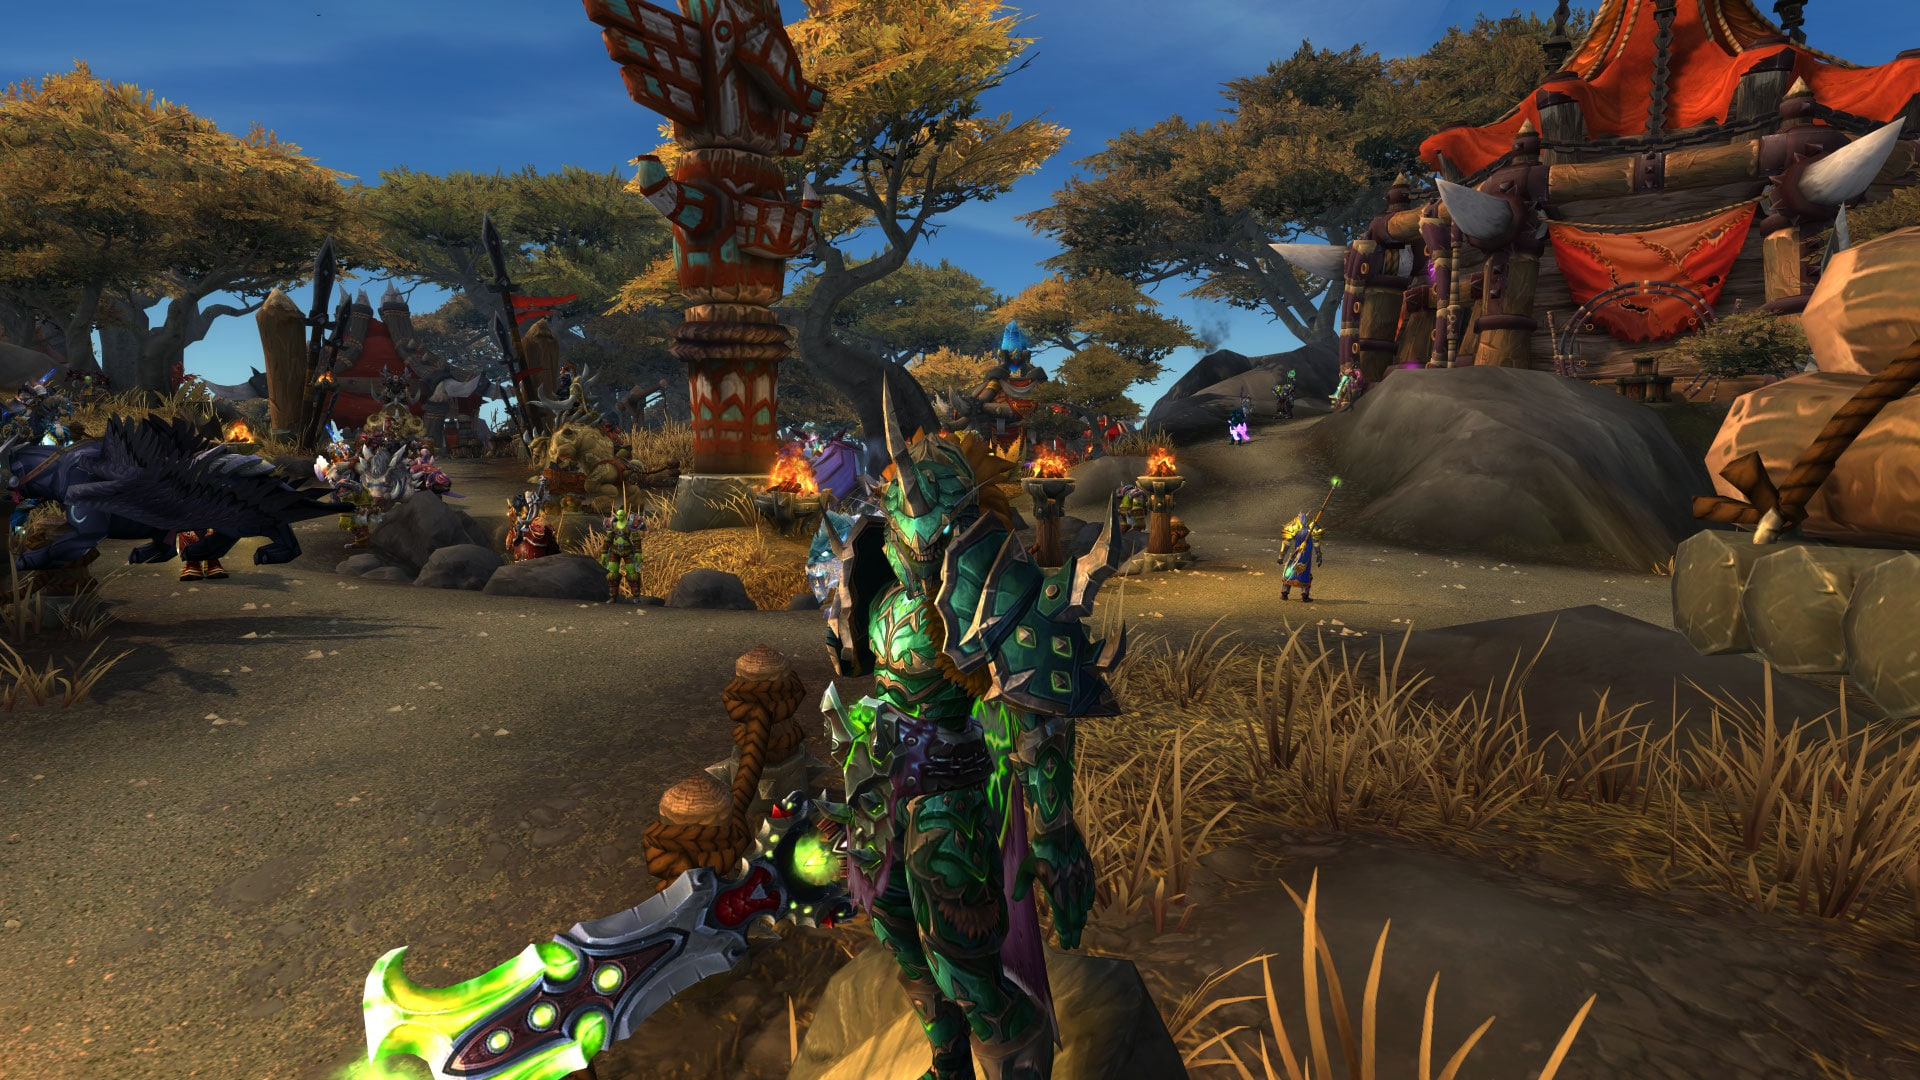 How To Make World of Warcraft Run Faster And Get Higher FPS